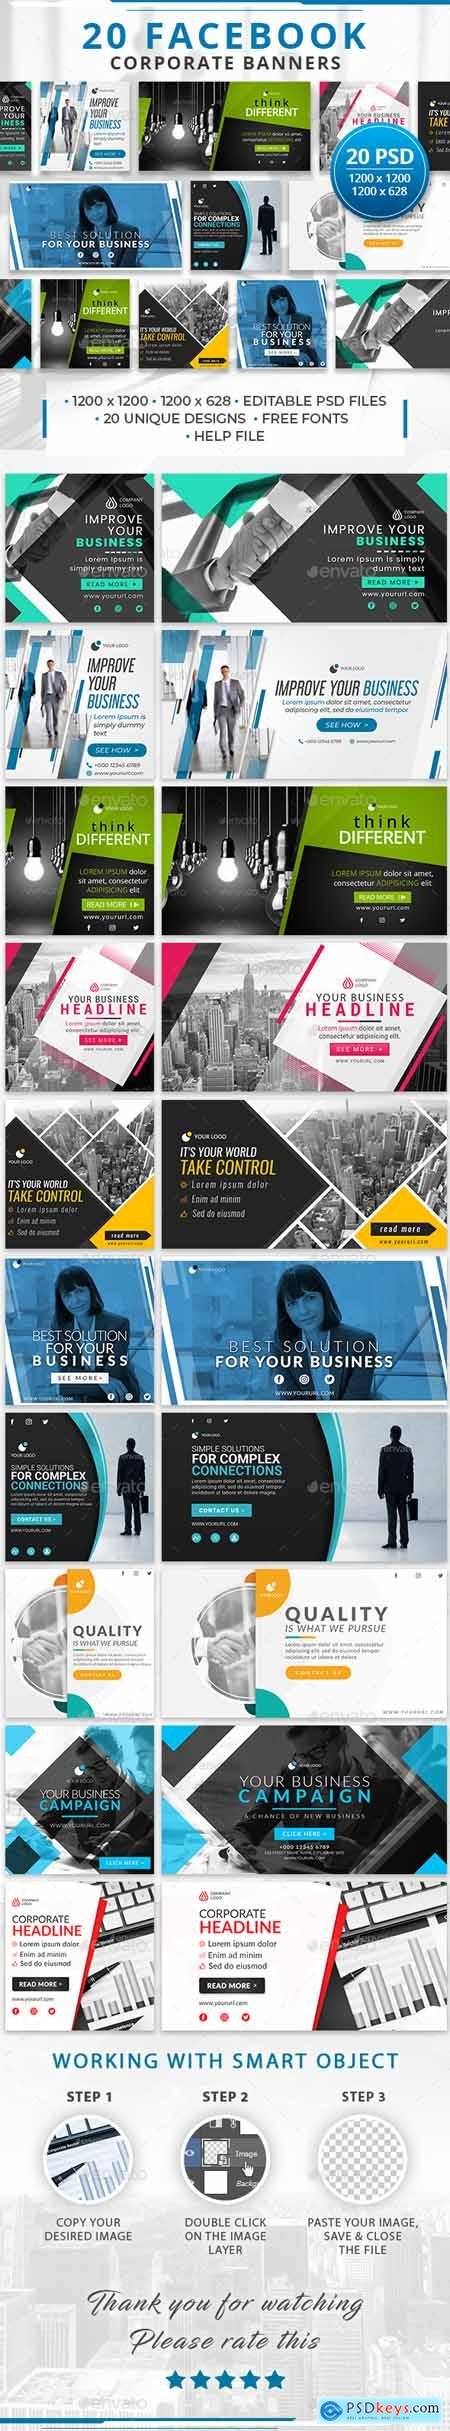 20 Facebook Corporate Banners 29391540